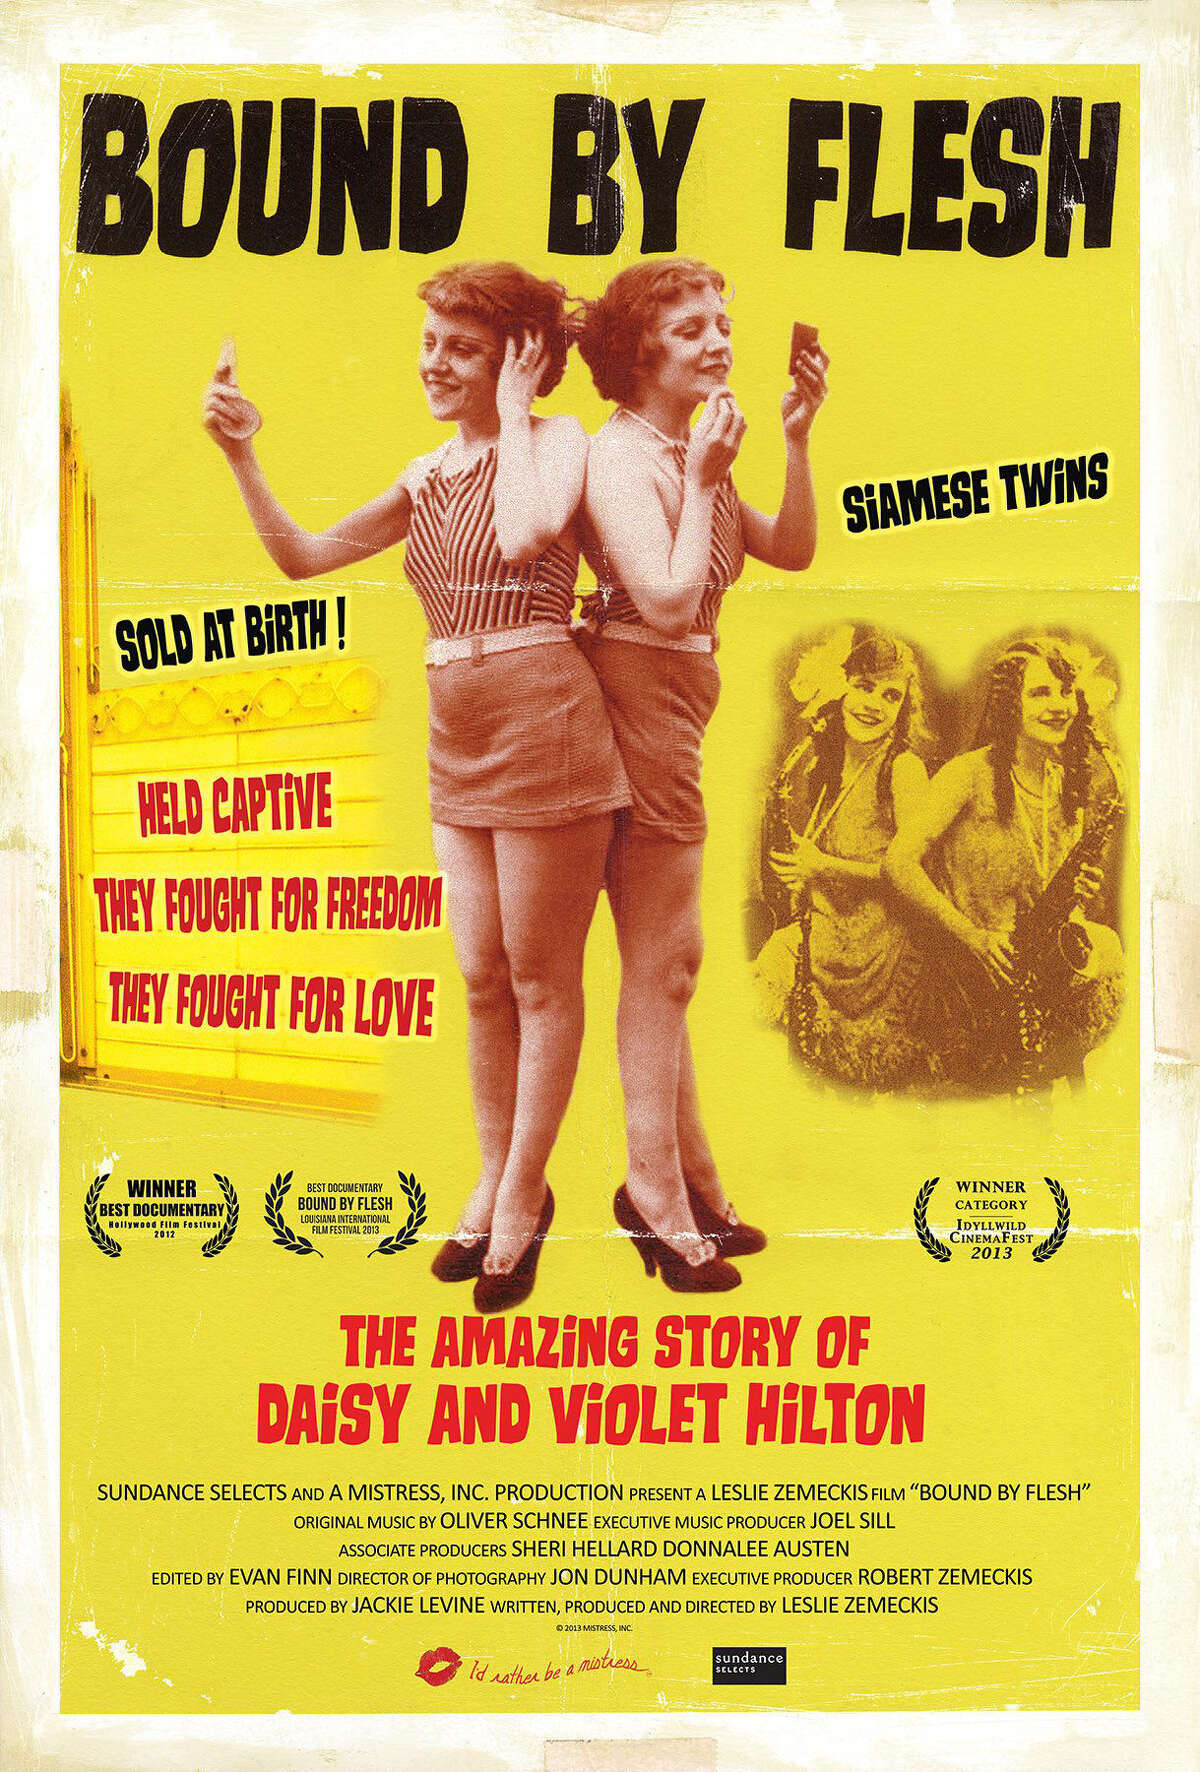 'Bound by Flesh' -Perhaps the most famous conjoined twins of all time, the Hiltons became a vaudeville sensation before falling on hard times and dying in poverty. This absorbing documentary follows their unique life, which was fraught with exploitation and hardship. Available Oct. 28